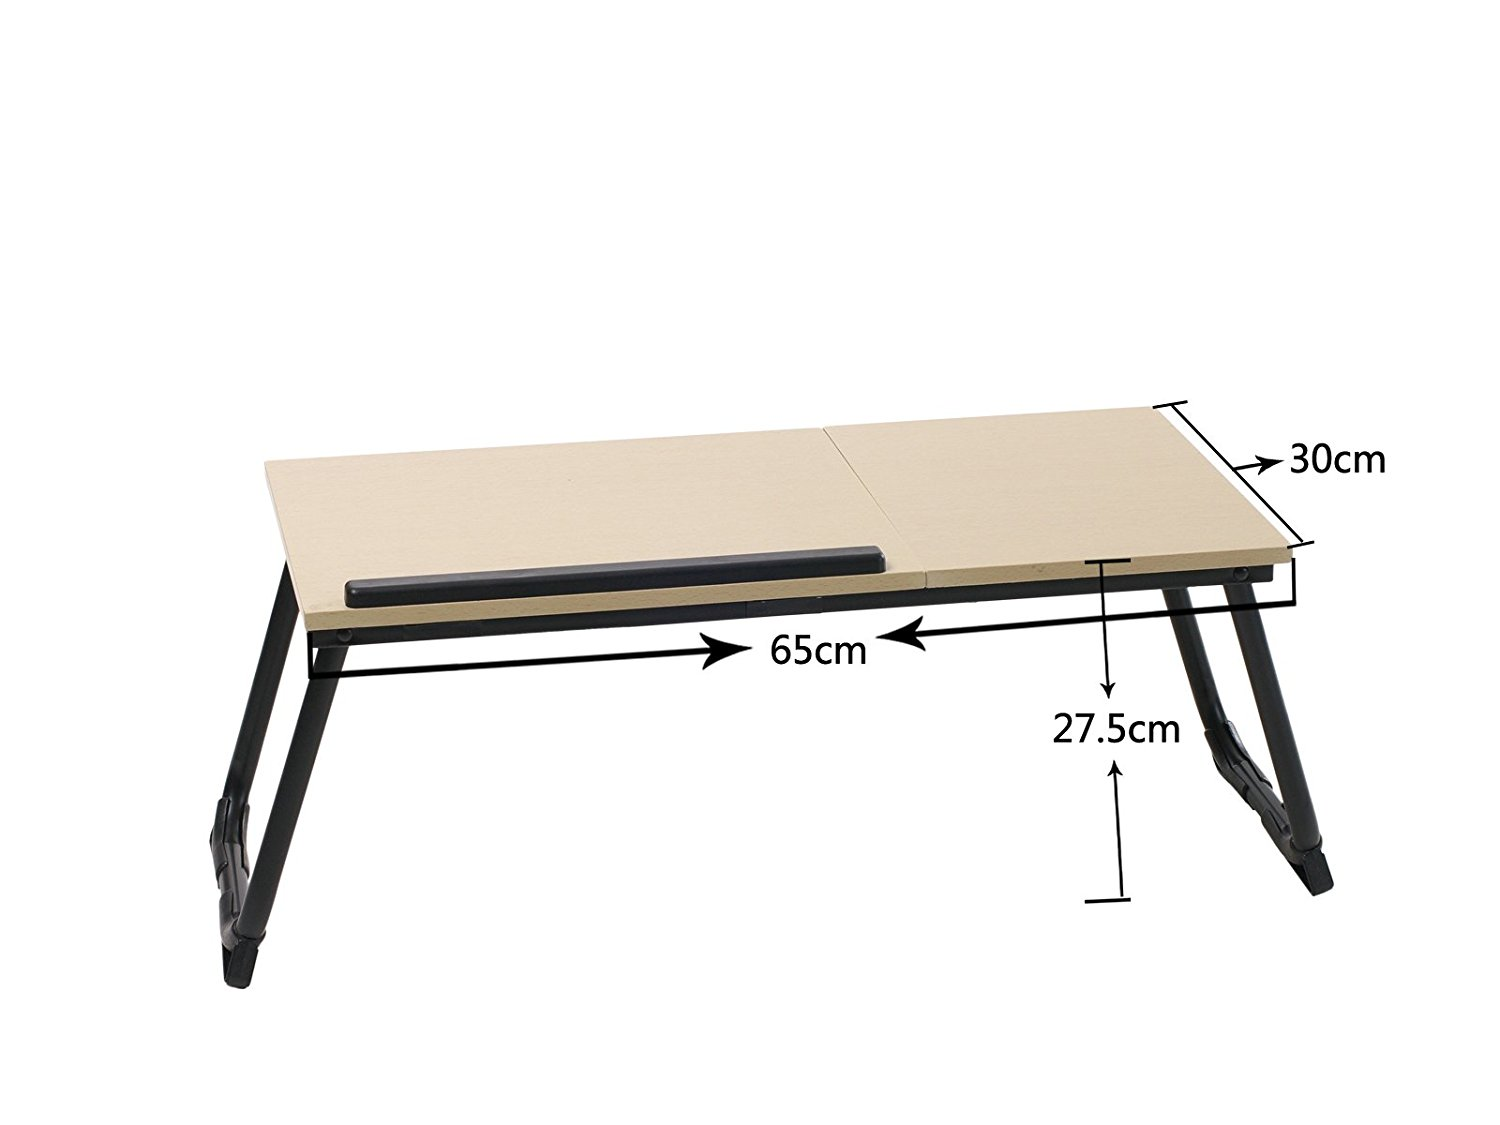 laptop portable stand table amazon computer desk com readaeer bed adjustable dp kitchen black home for